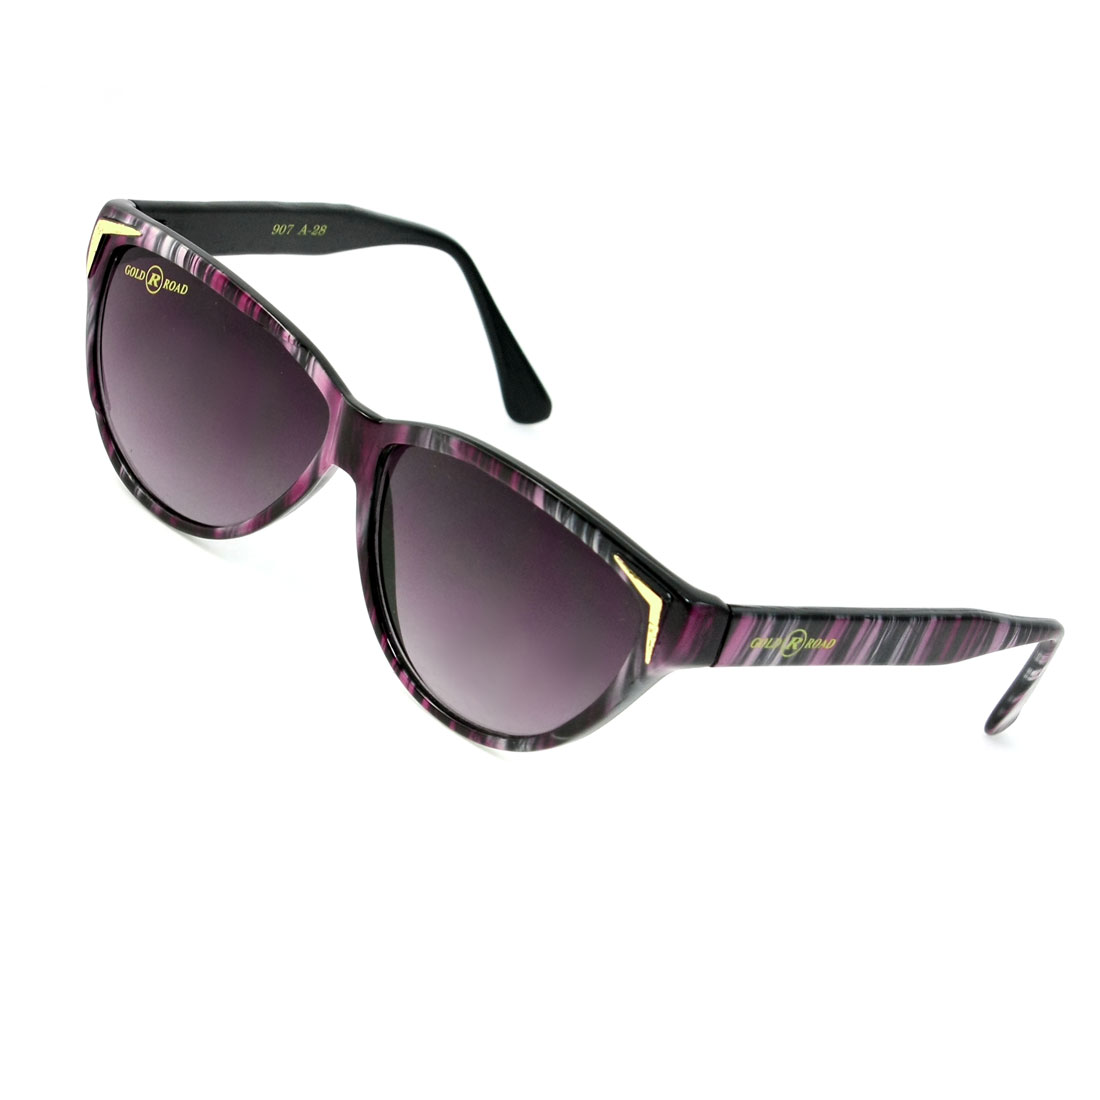 Tinted Raindrop Lens Stripes Full Frame Sunglasses Black Purple for Lady